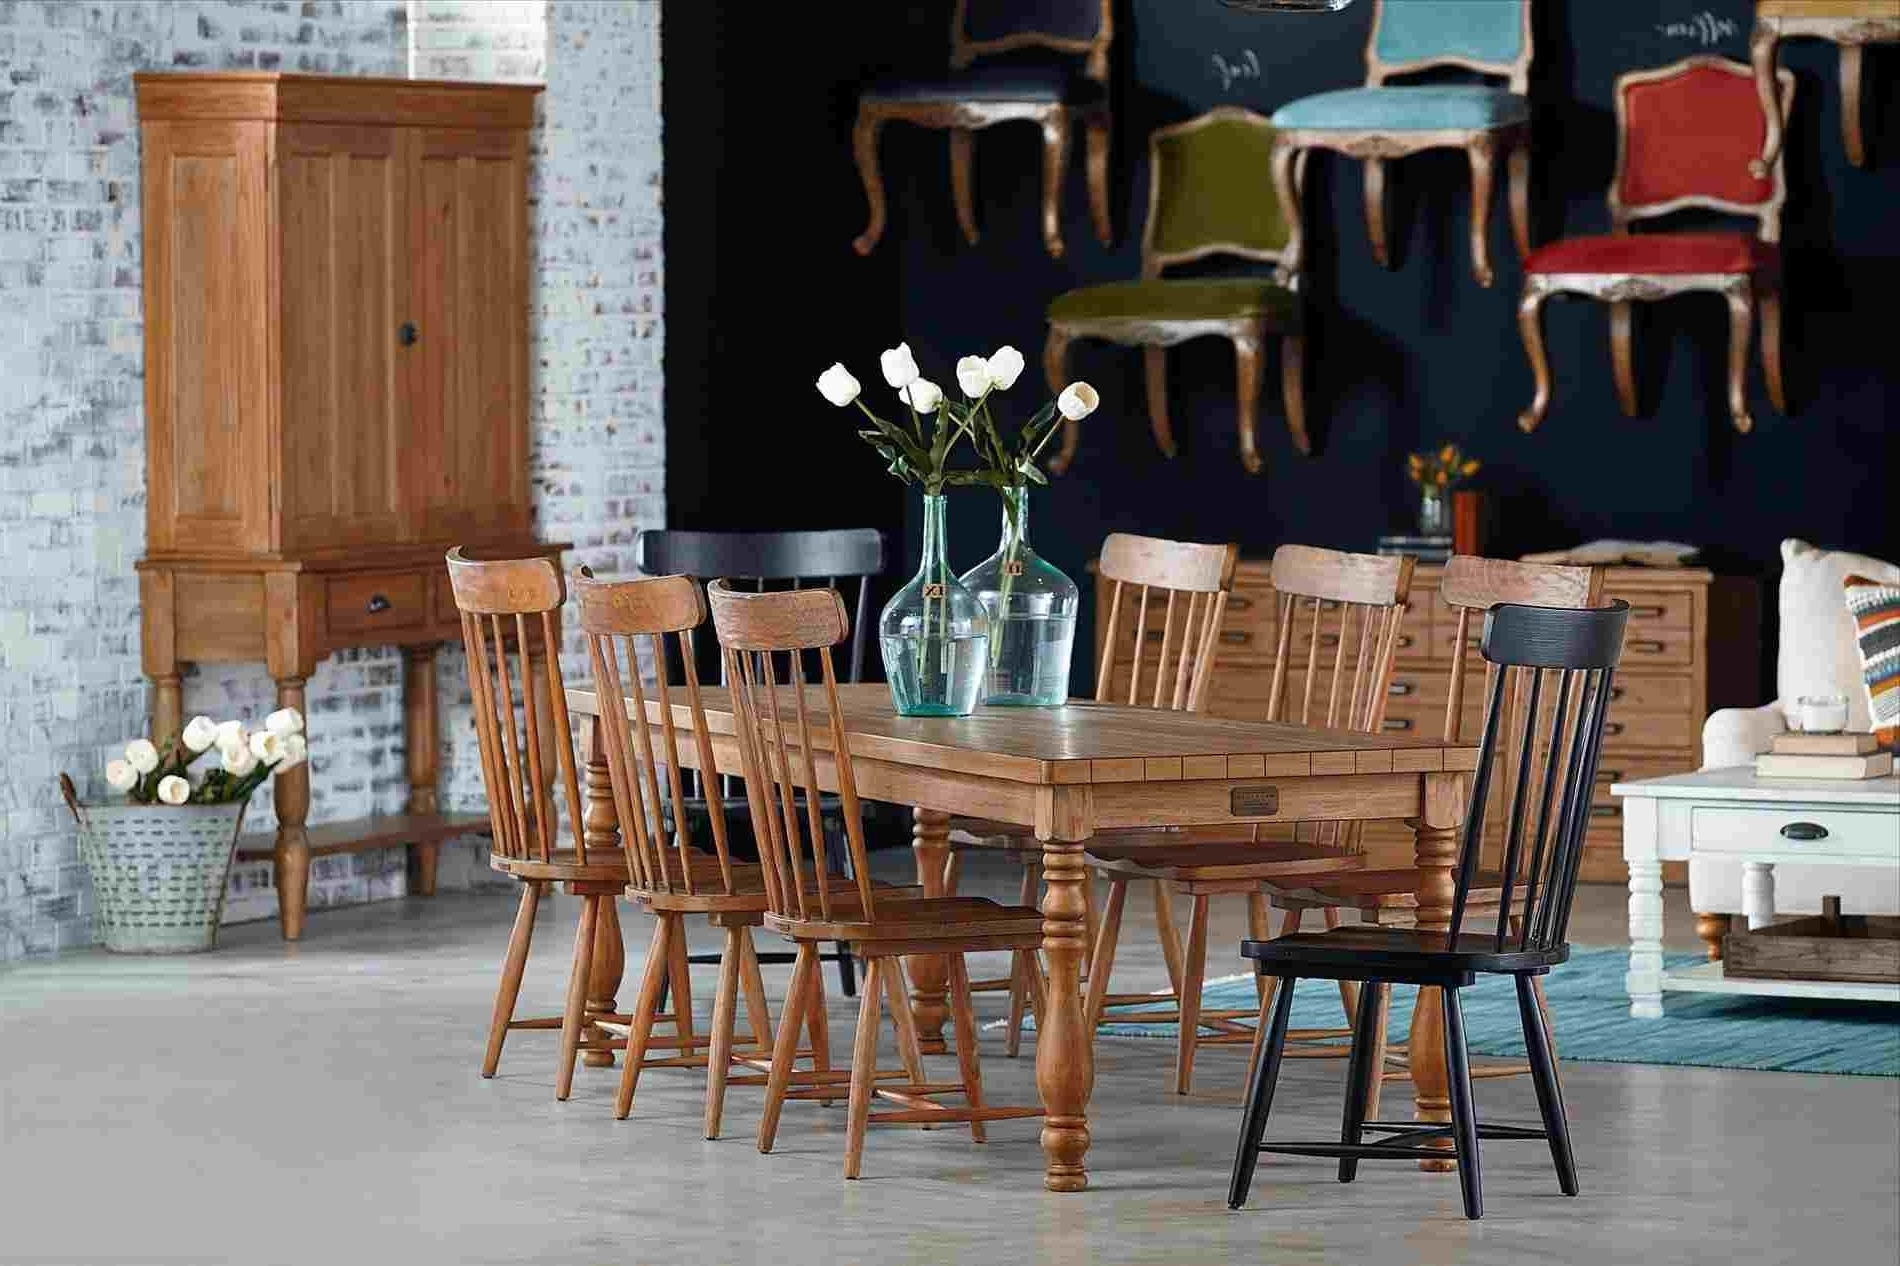 Magnolia Home Trestle Dining Table Elegant Joanna Gaines Farmhouse Intended For Trendy Magnolia Home Sawbuck Dining Tables (View 17 of 25)